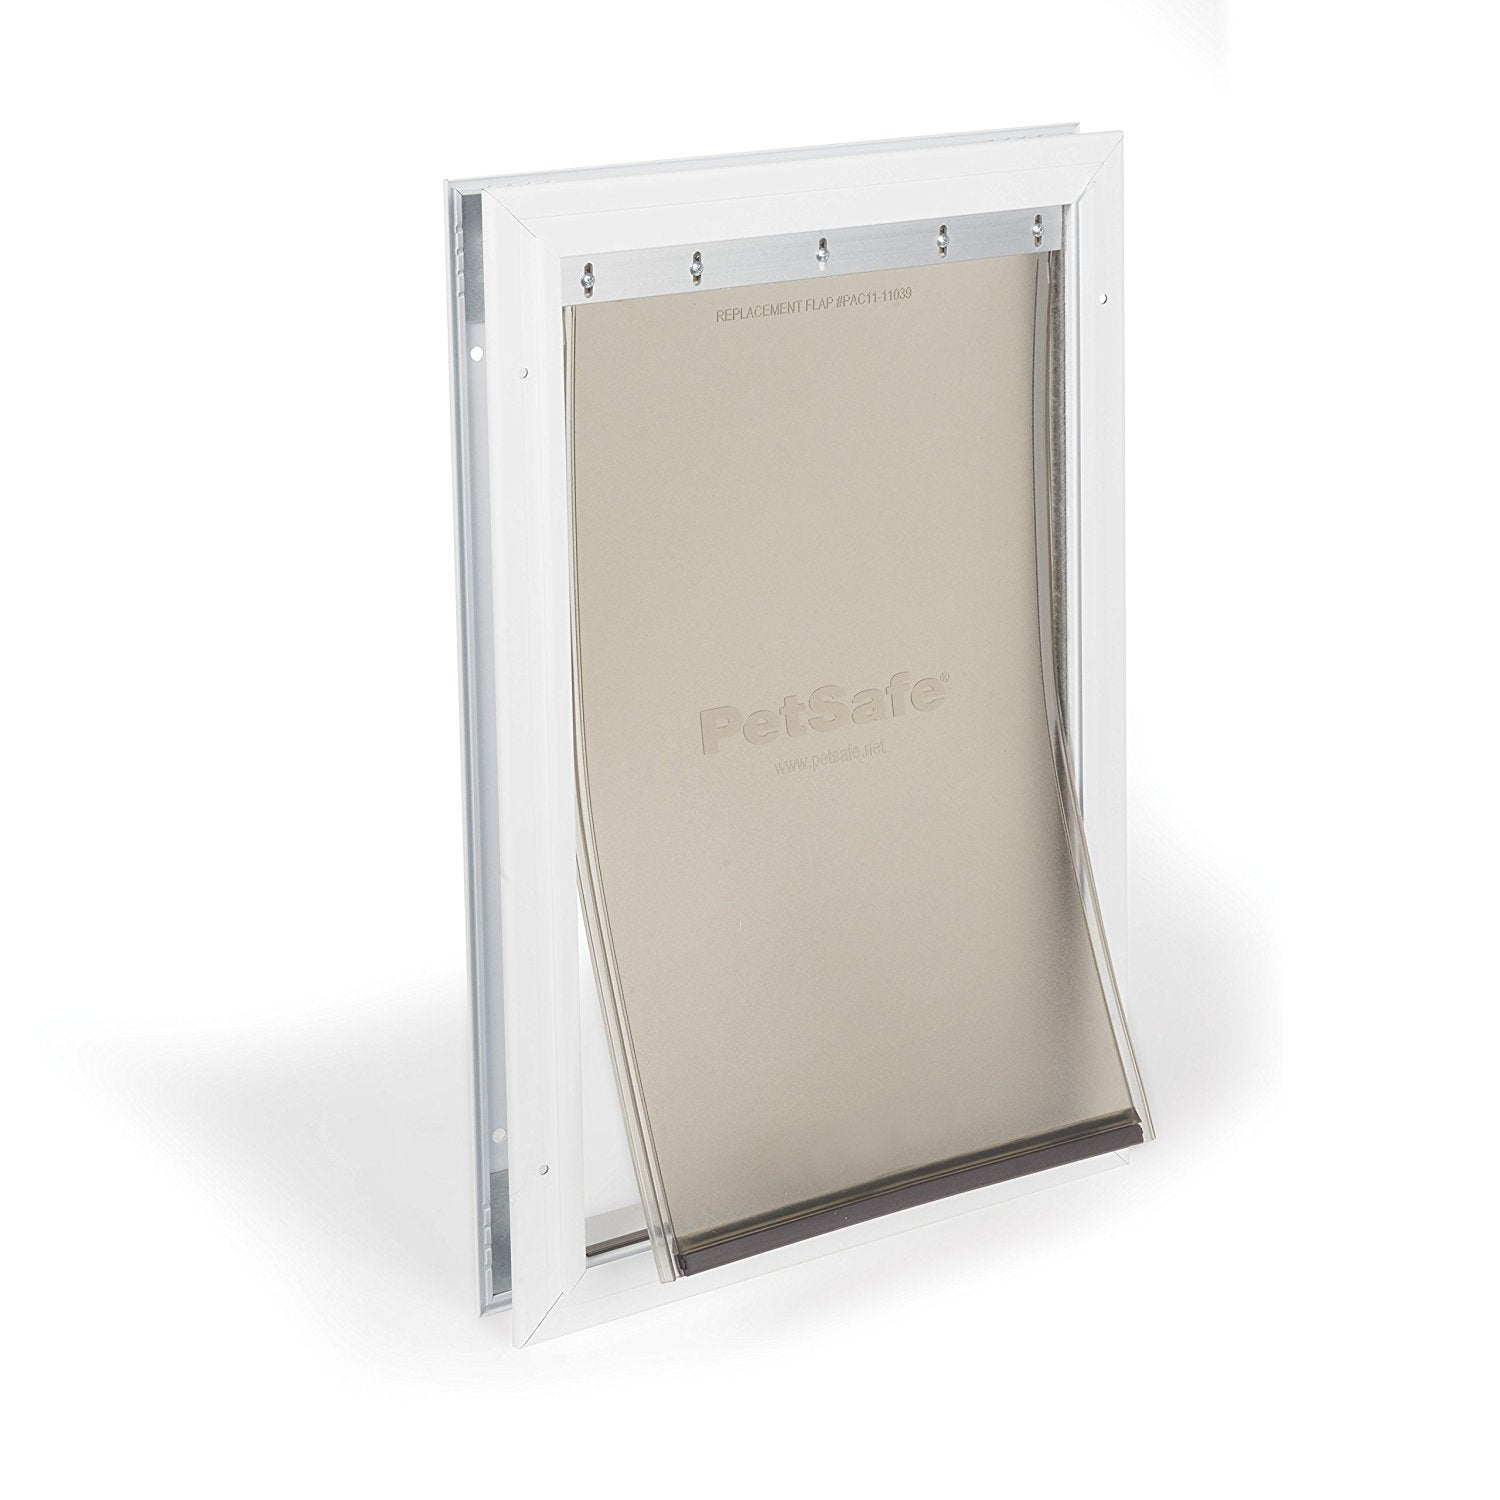 PetSafe Freedom Aluminum Pet Door for Dogs and Cats, White, Tinted Vinyl Flap Dog Doors - London the Local